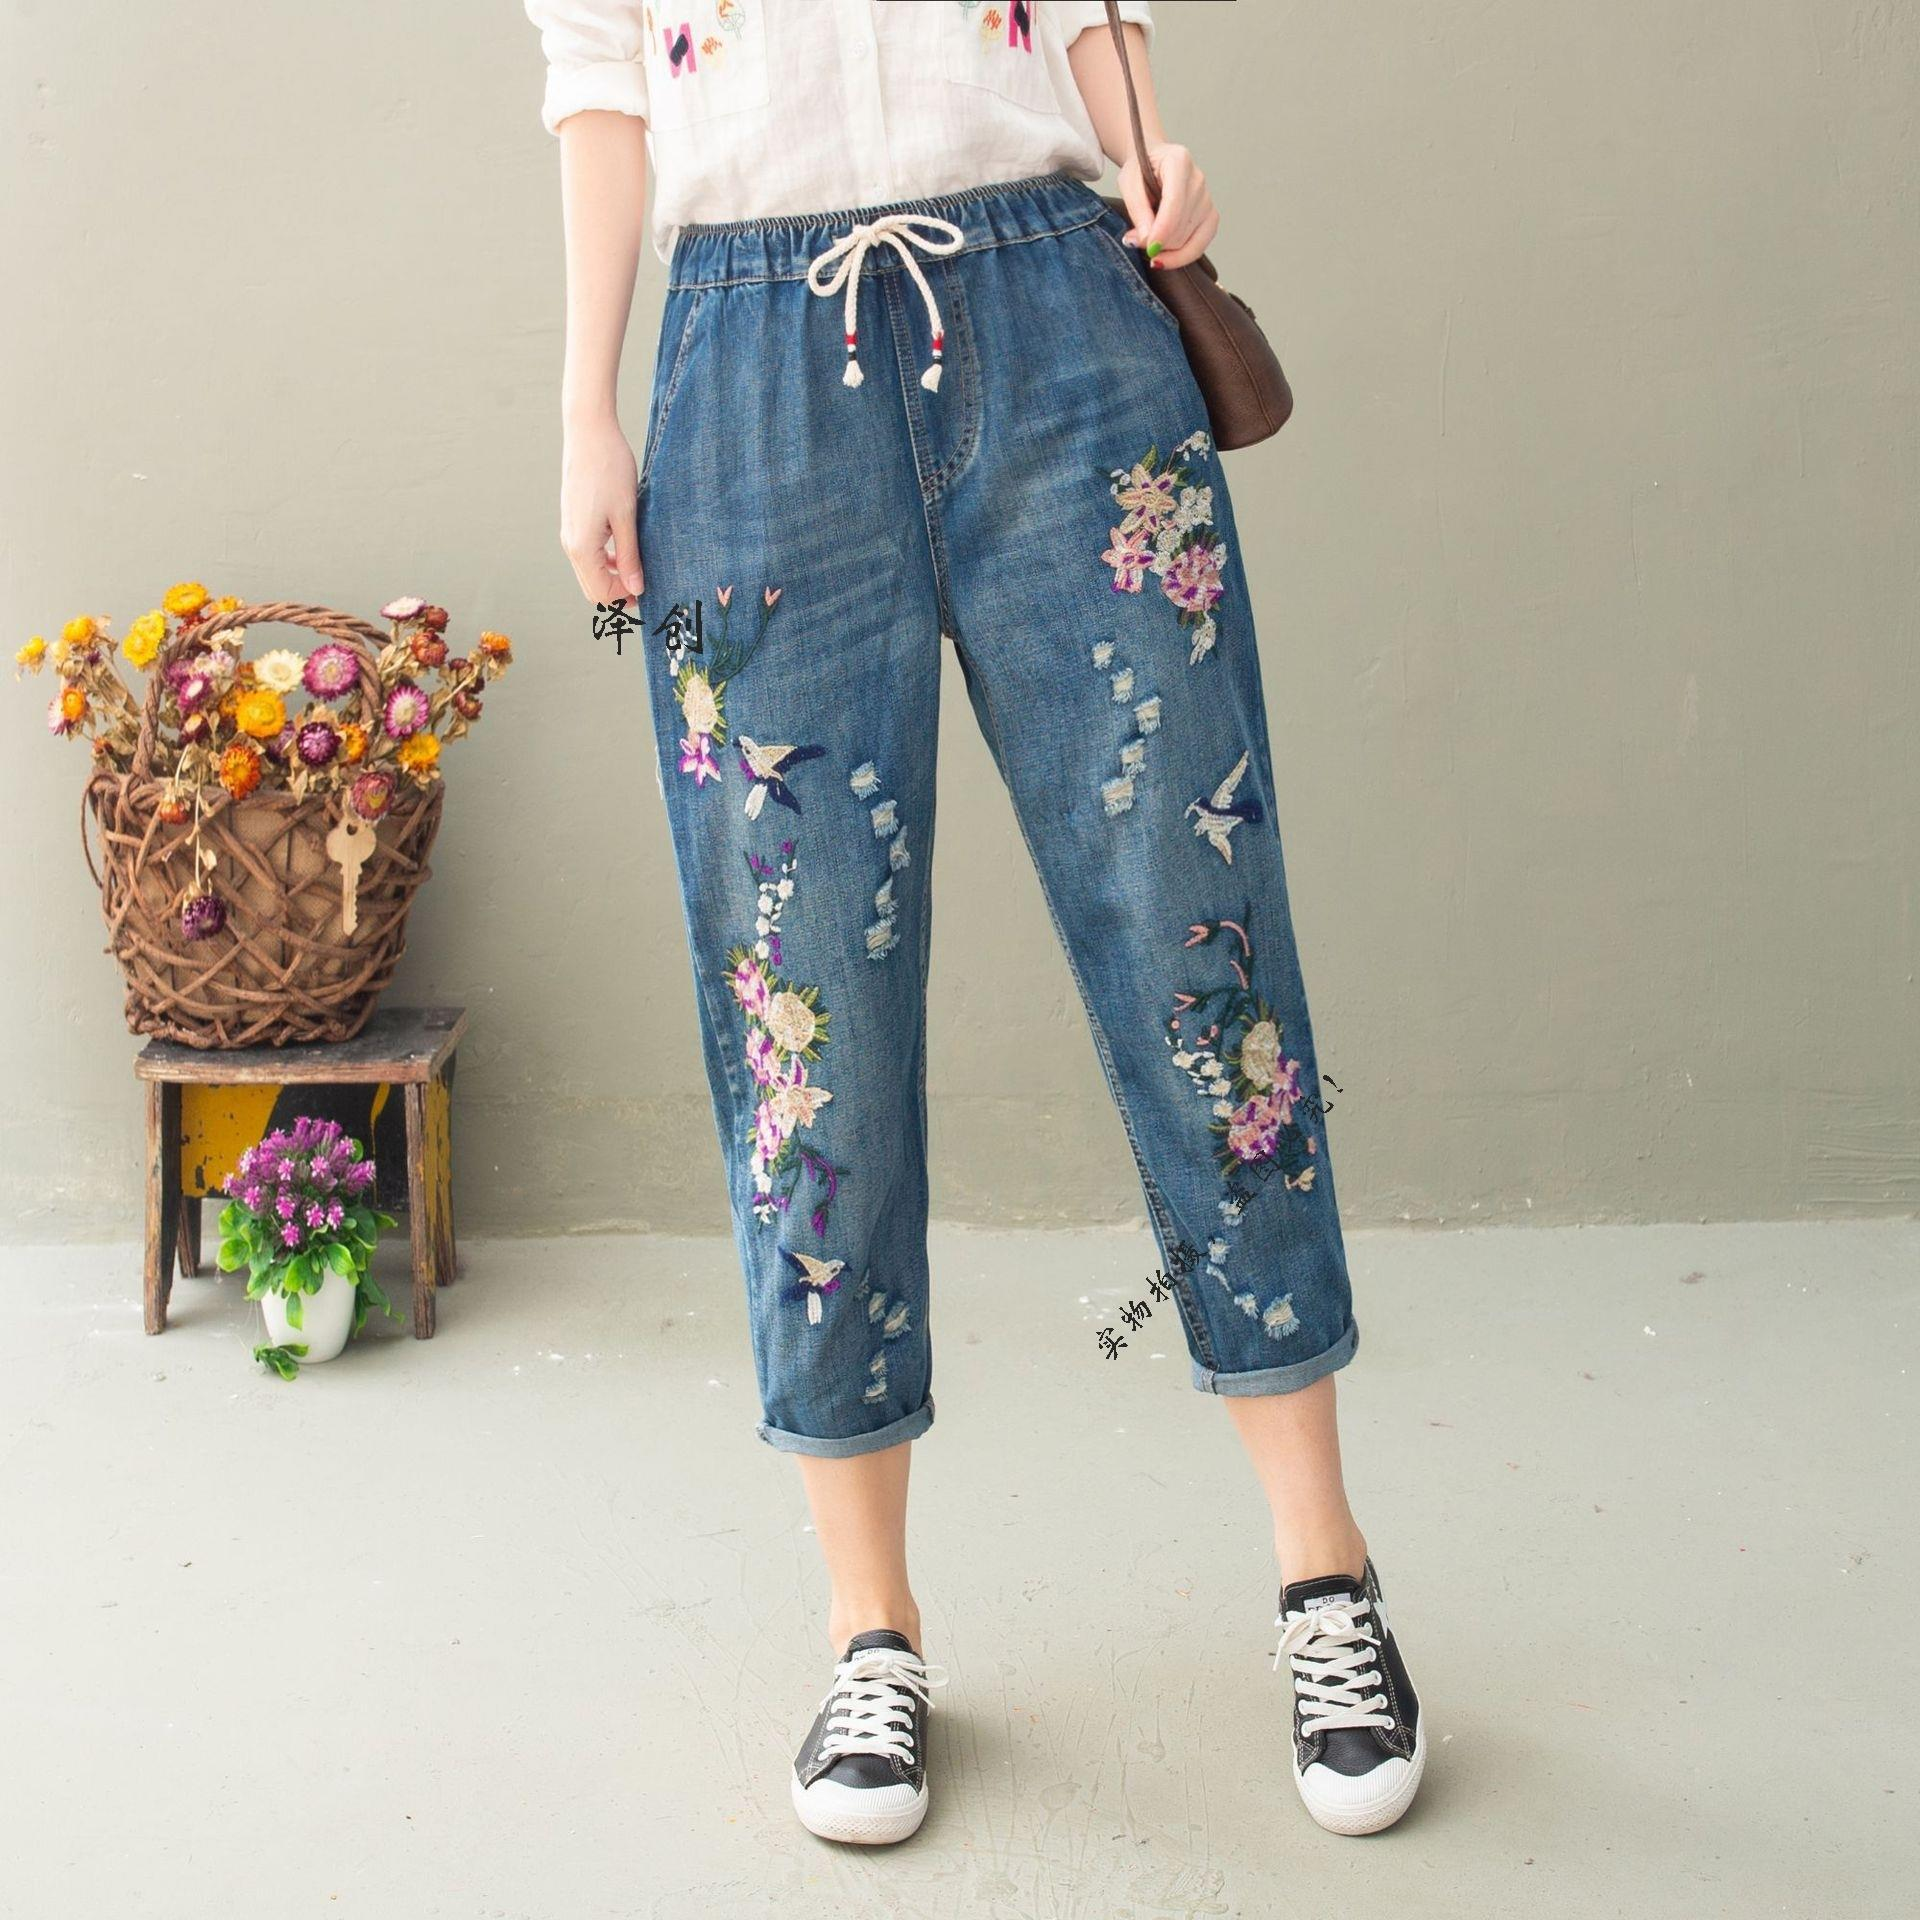 Women Harem Jeans Elastic Waist Spring Floral Embroidery Chinese Style Denim Pant Calf Length Trousers Lady Casual Loose Pants